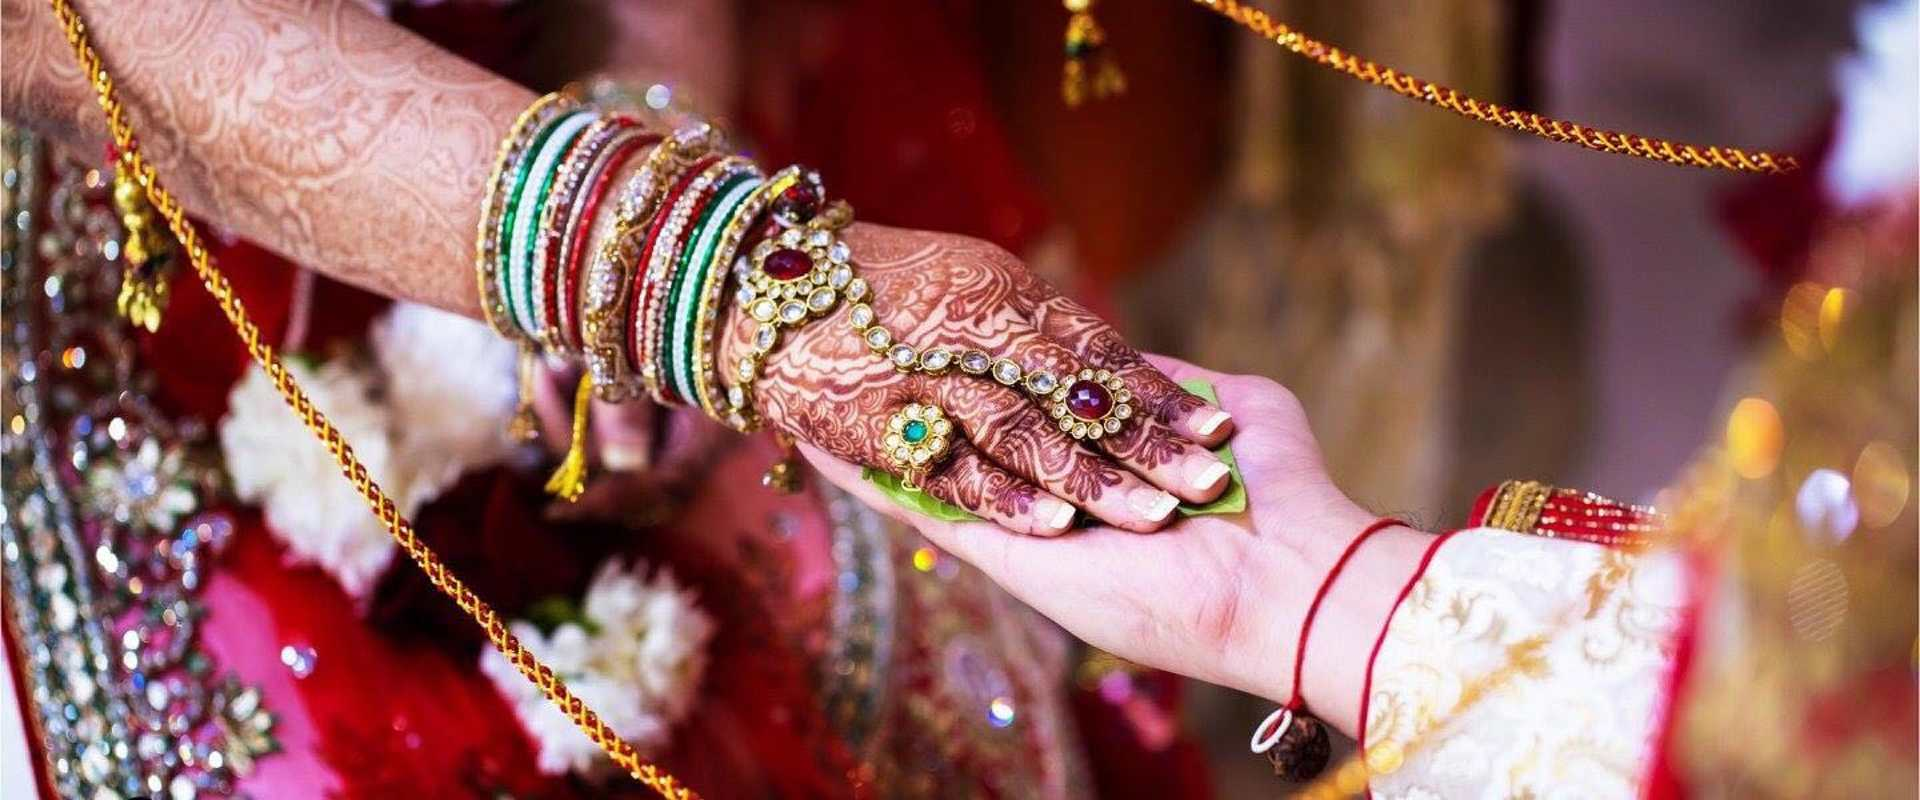 We Are Specialist In Indian Wedding Background Music Can Play Traditional Songs Lagan Geet Shennai And Or Bollywood